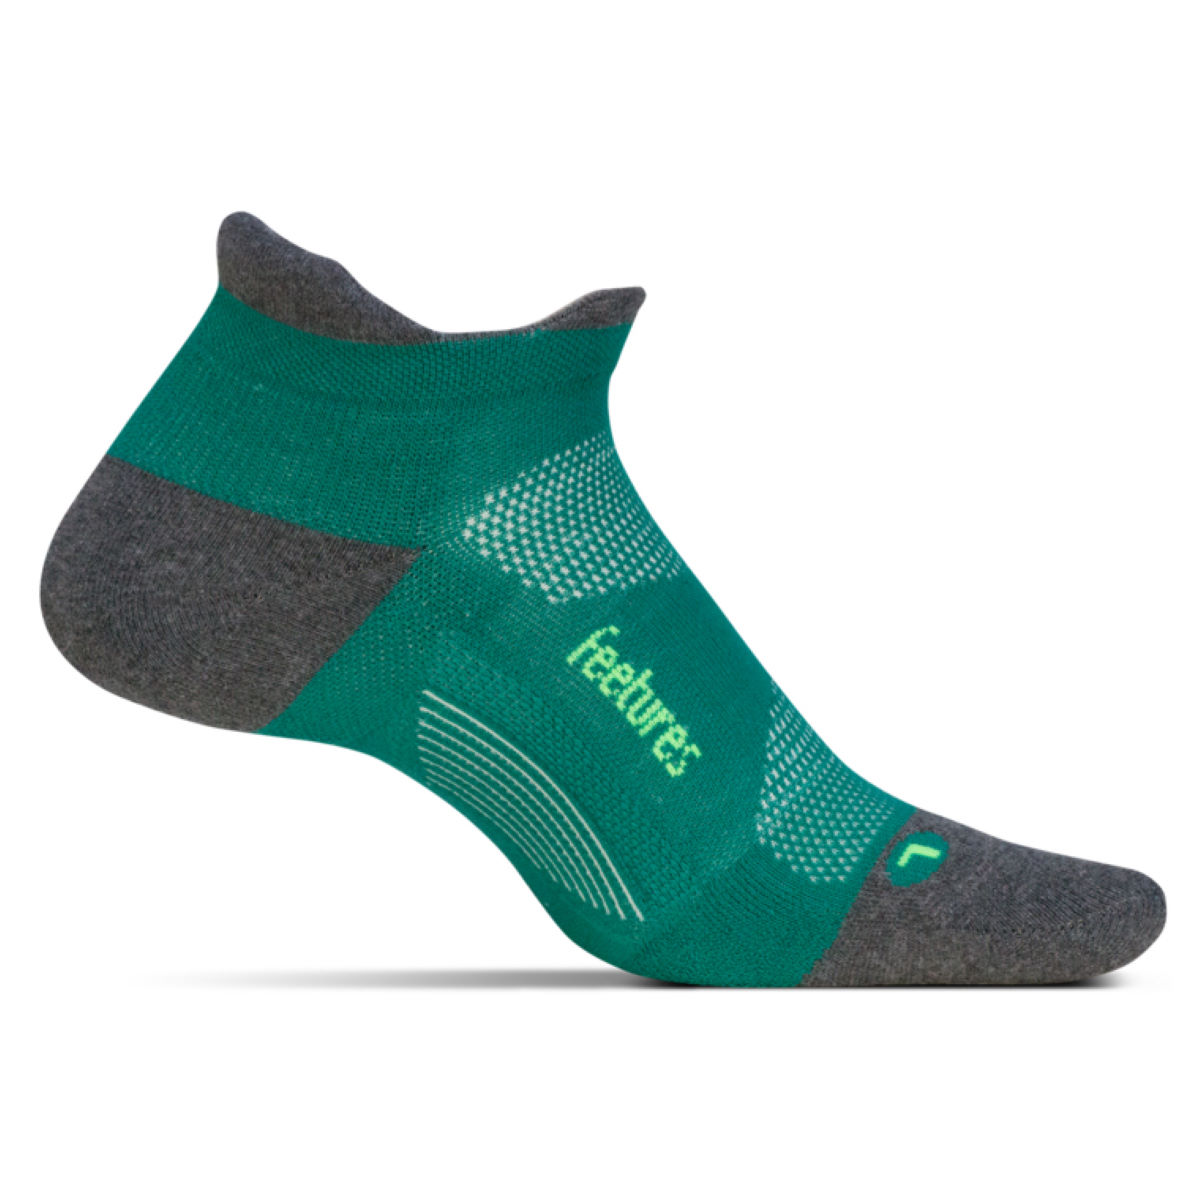 Calcetines Feetures! Elite Max Cushion No Show Tab - Calcetines para correr